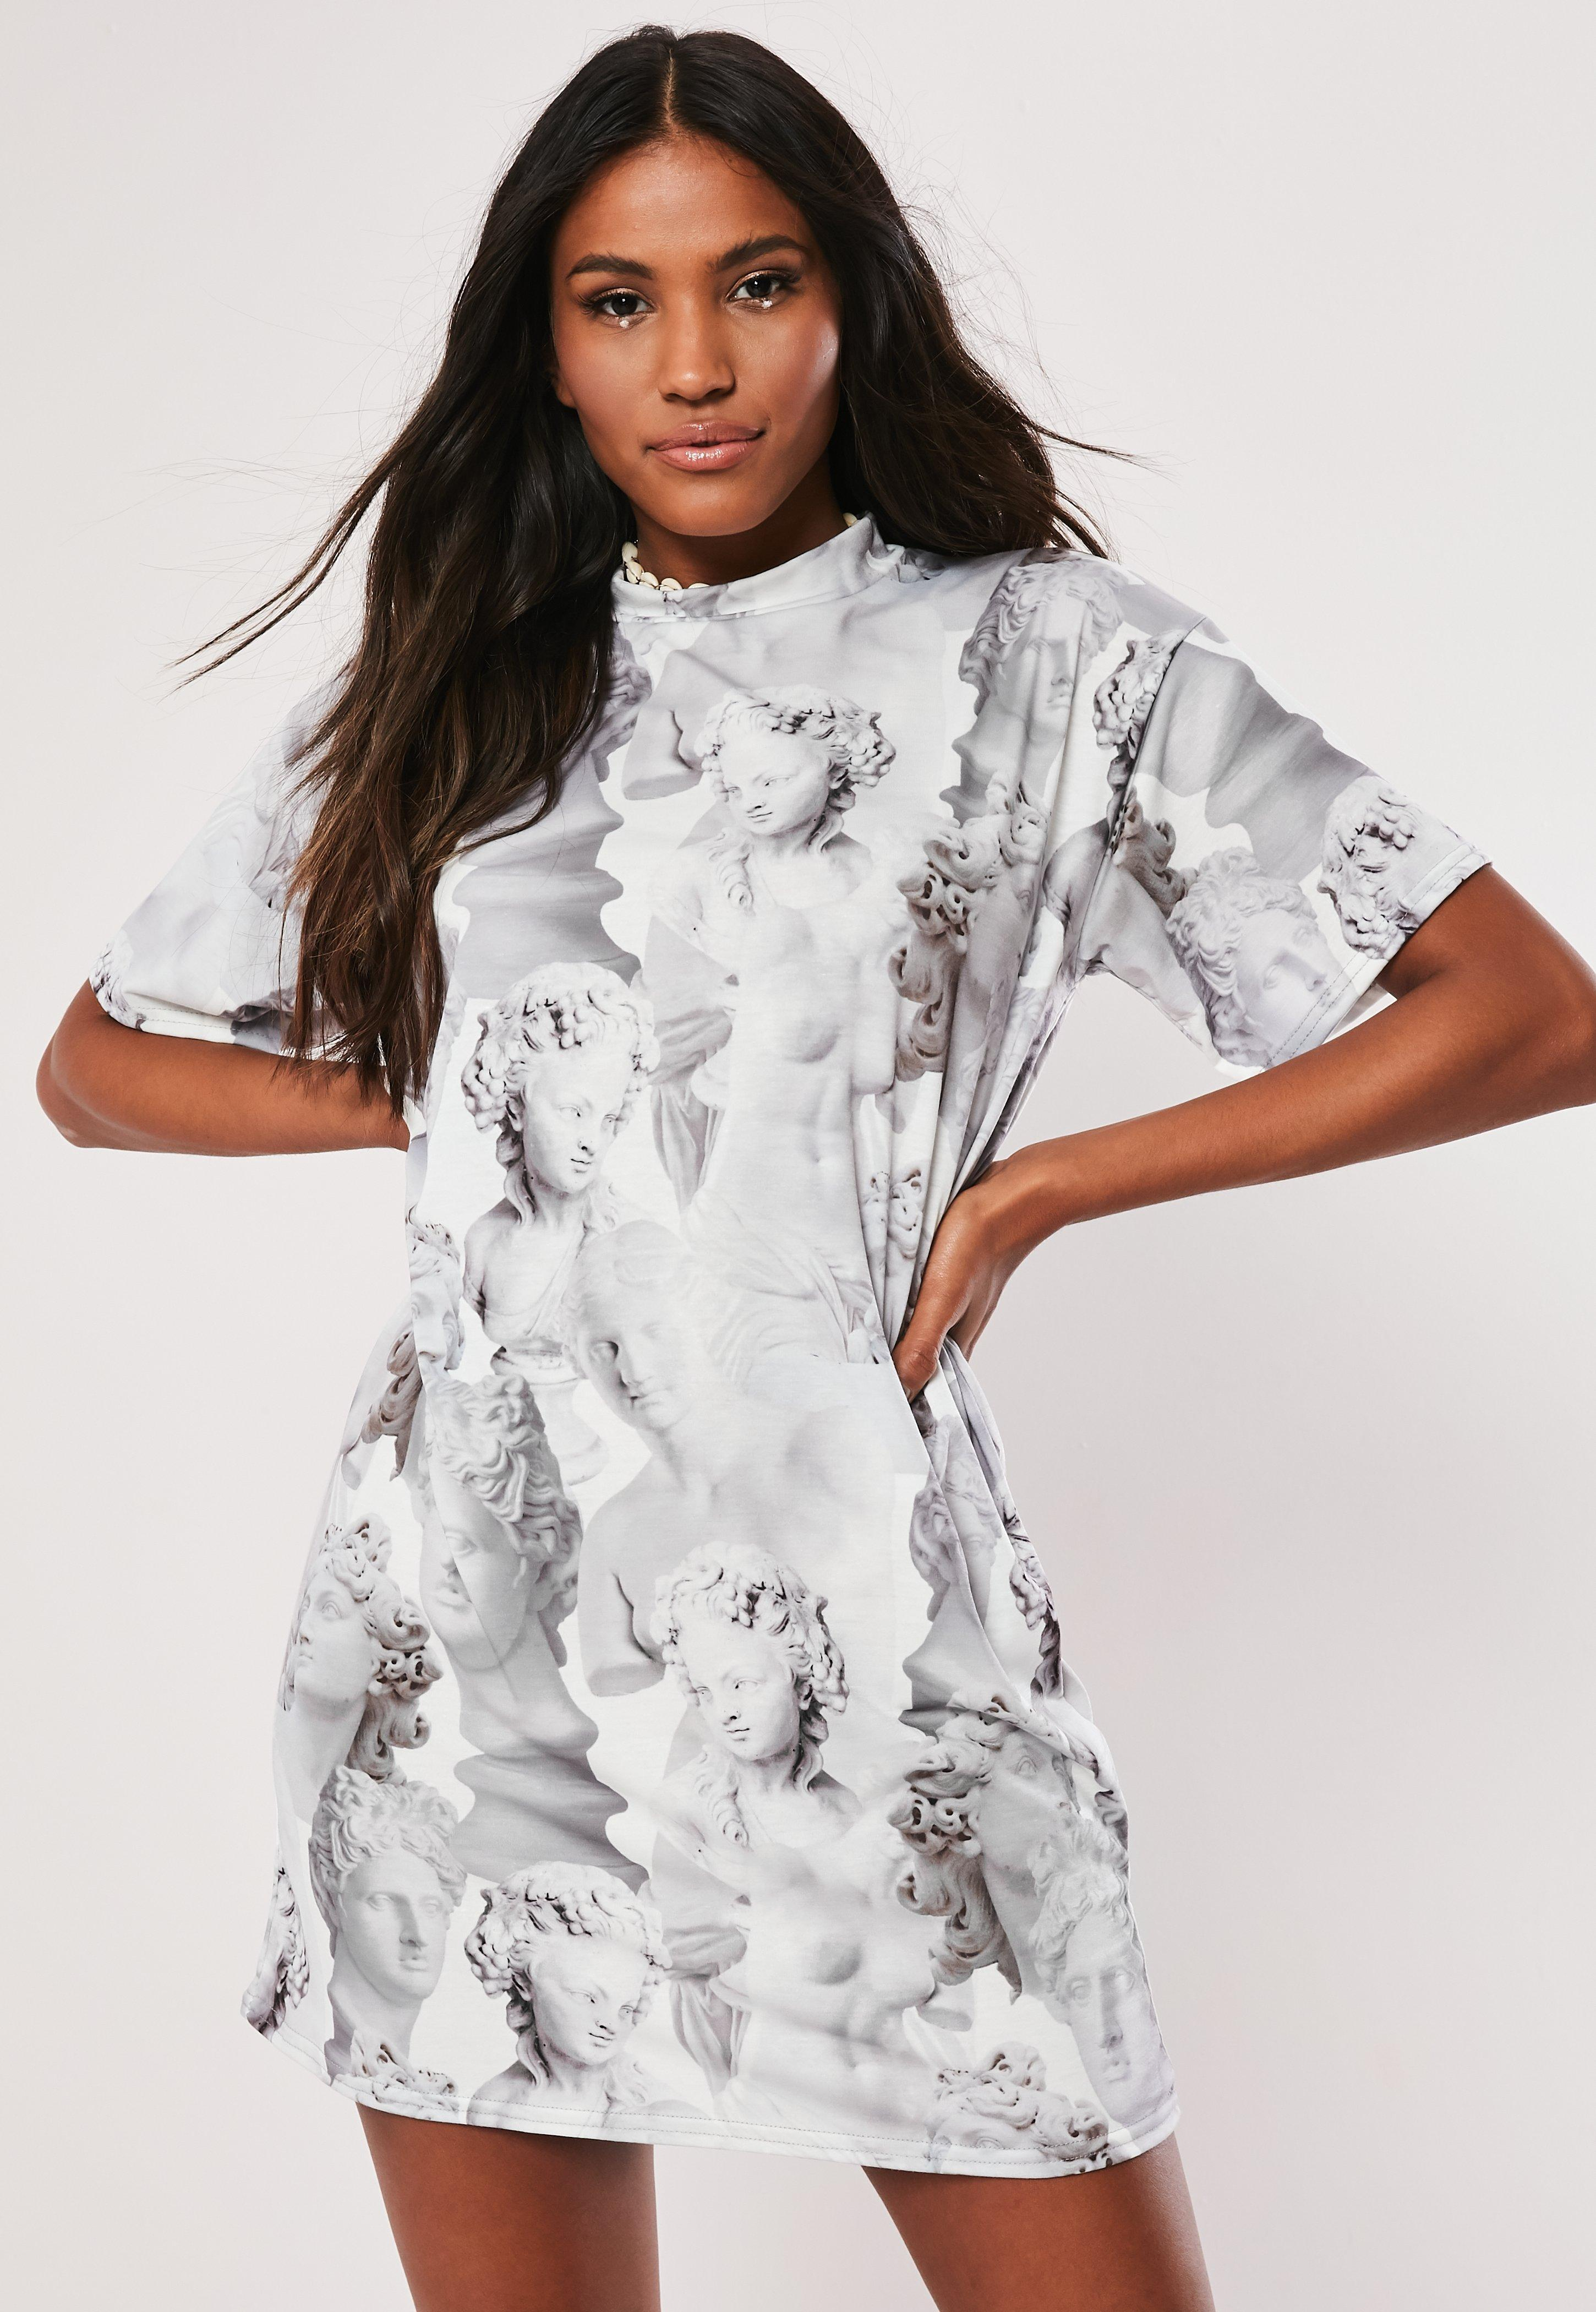 855bb07570b Lyst - Missguided Grey Statue Graphic Print T Shirt Dress in Gray